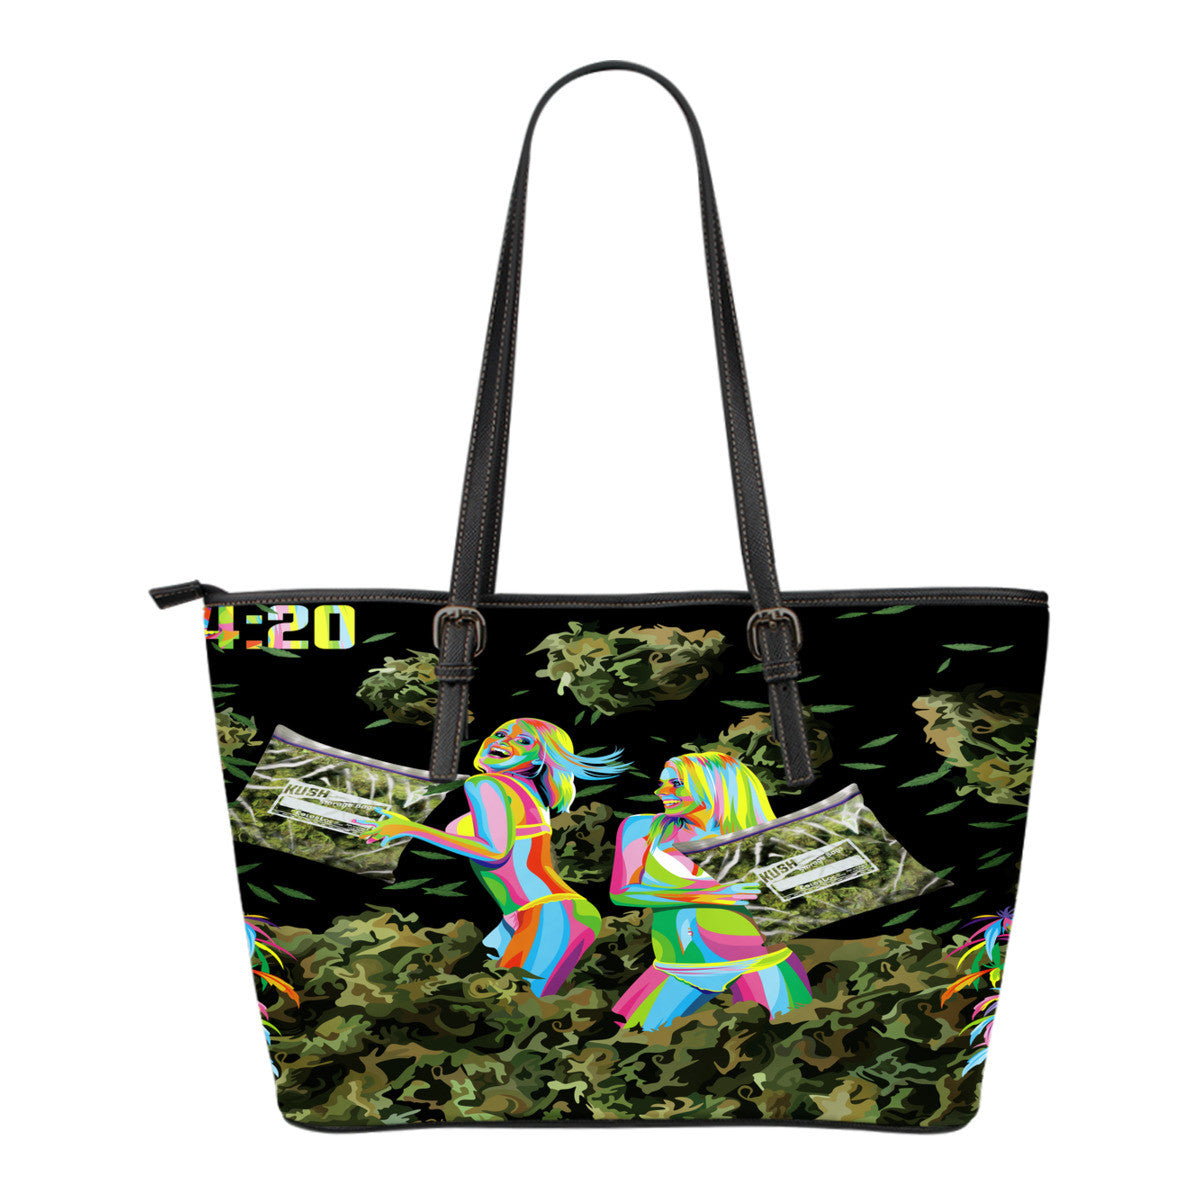 Cannabis Leather Totes